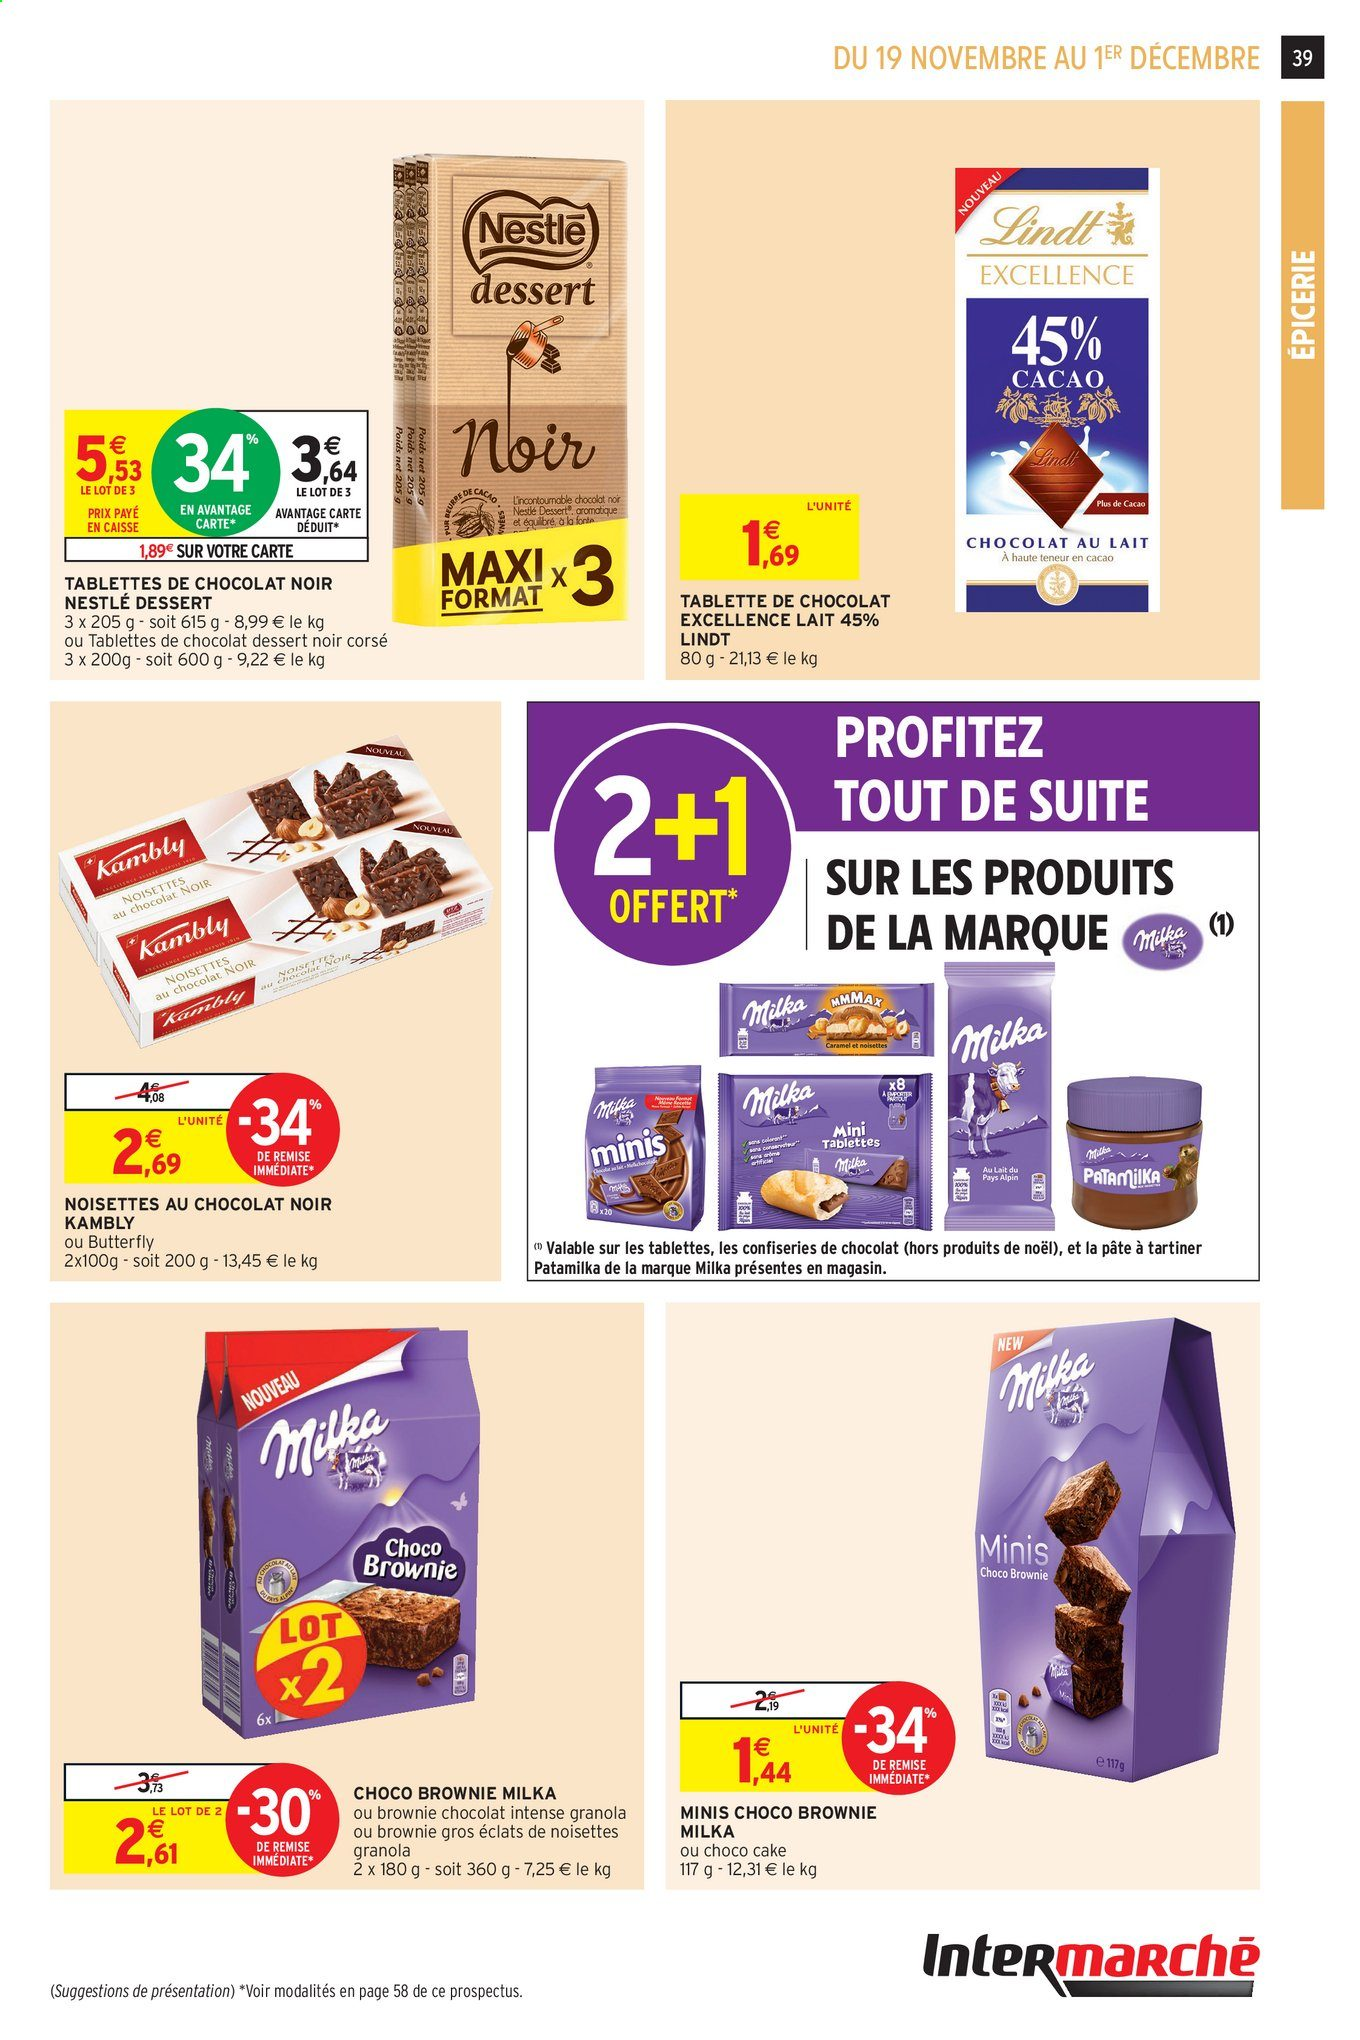 Catalogue Intermarché - 19.11.2019 - 01.12.2019. Page 35.